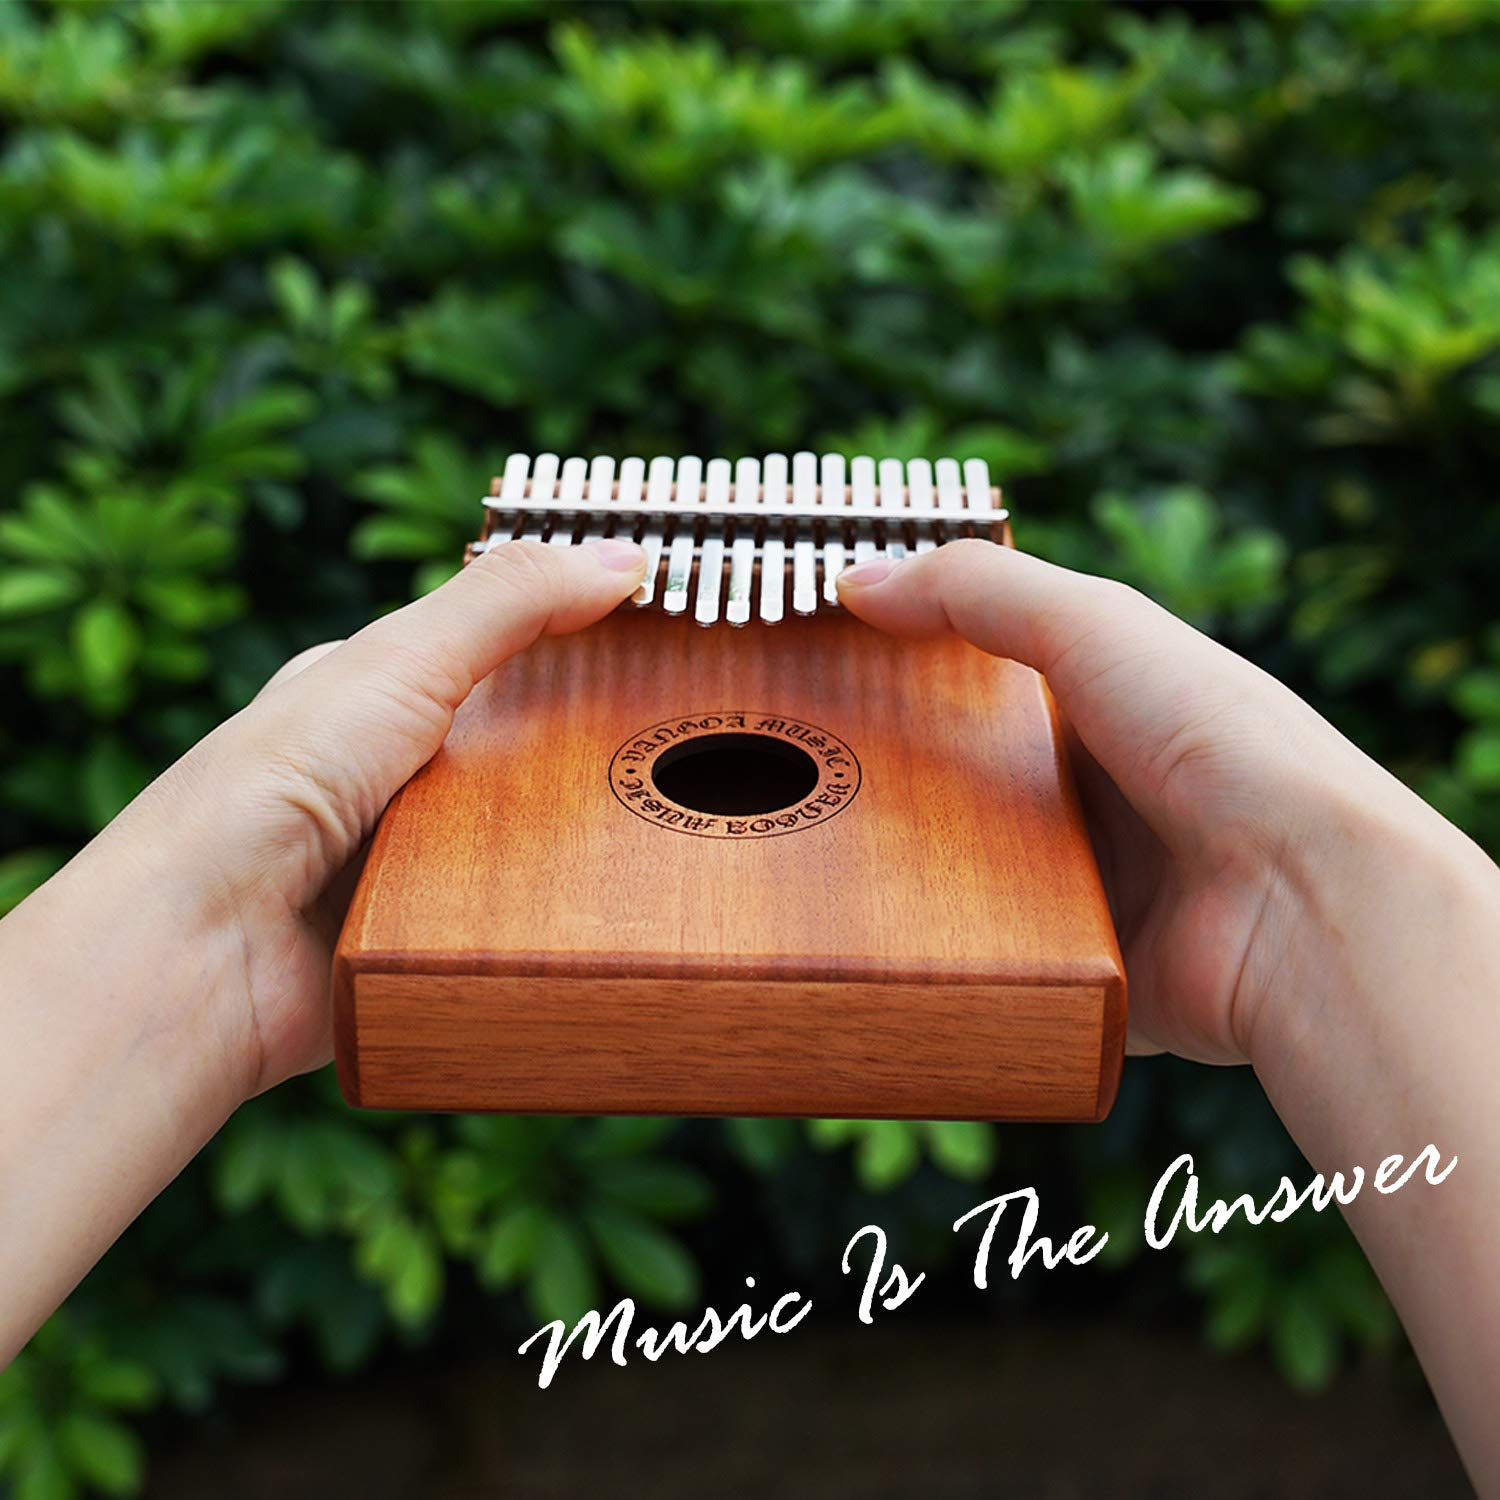 Vangoa Kalimba 17 keys African Thumb Piano kit with Rubber Finger Guards, Tuning Hammer, Carry Bag, Cloth bag, Pickup and Key stickers by Vangoa (Image #5)